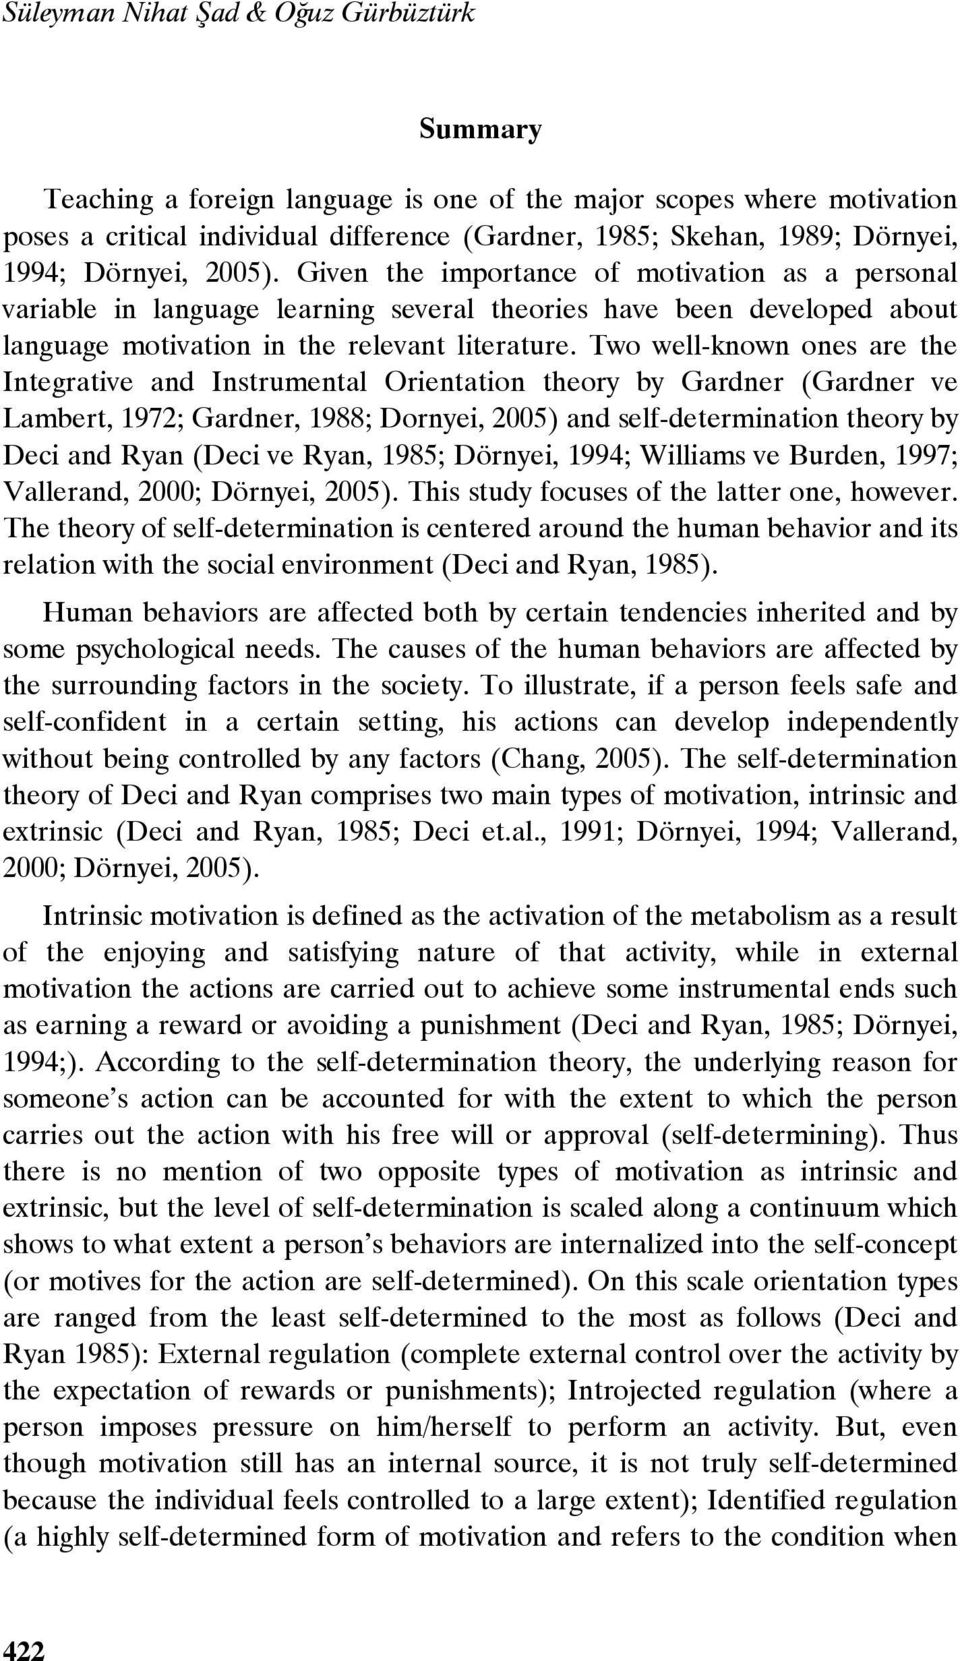 Two well-known ones are the Integrative and Instrumental Orientation theory by Gardner (Gardner ve Lambert, 1972; Gardner, 1988; Dornyei, 2005) and self-determination theory by Deci and Ryan (Deci ve